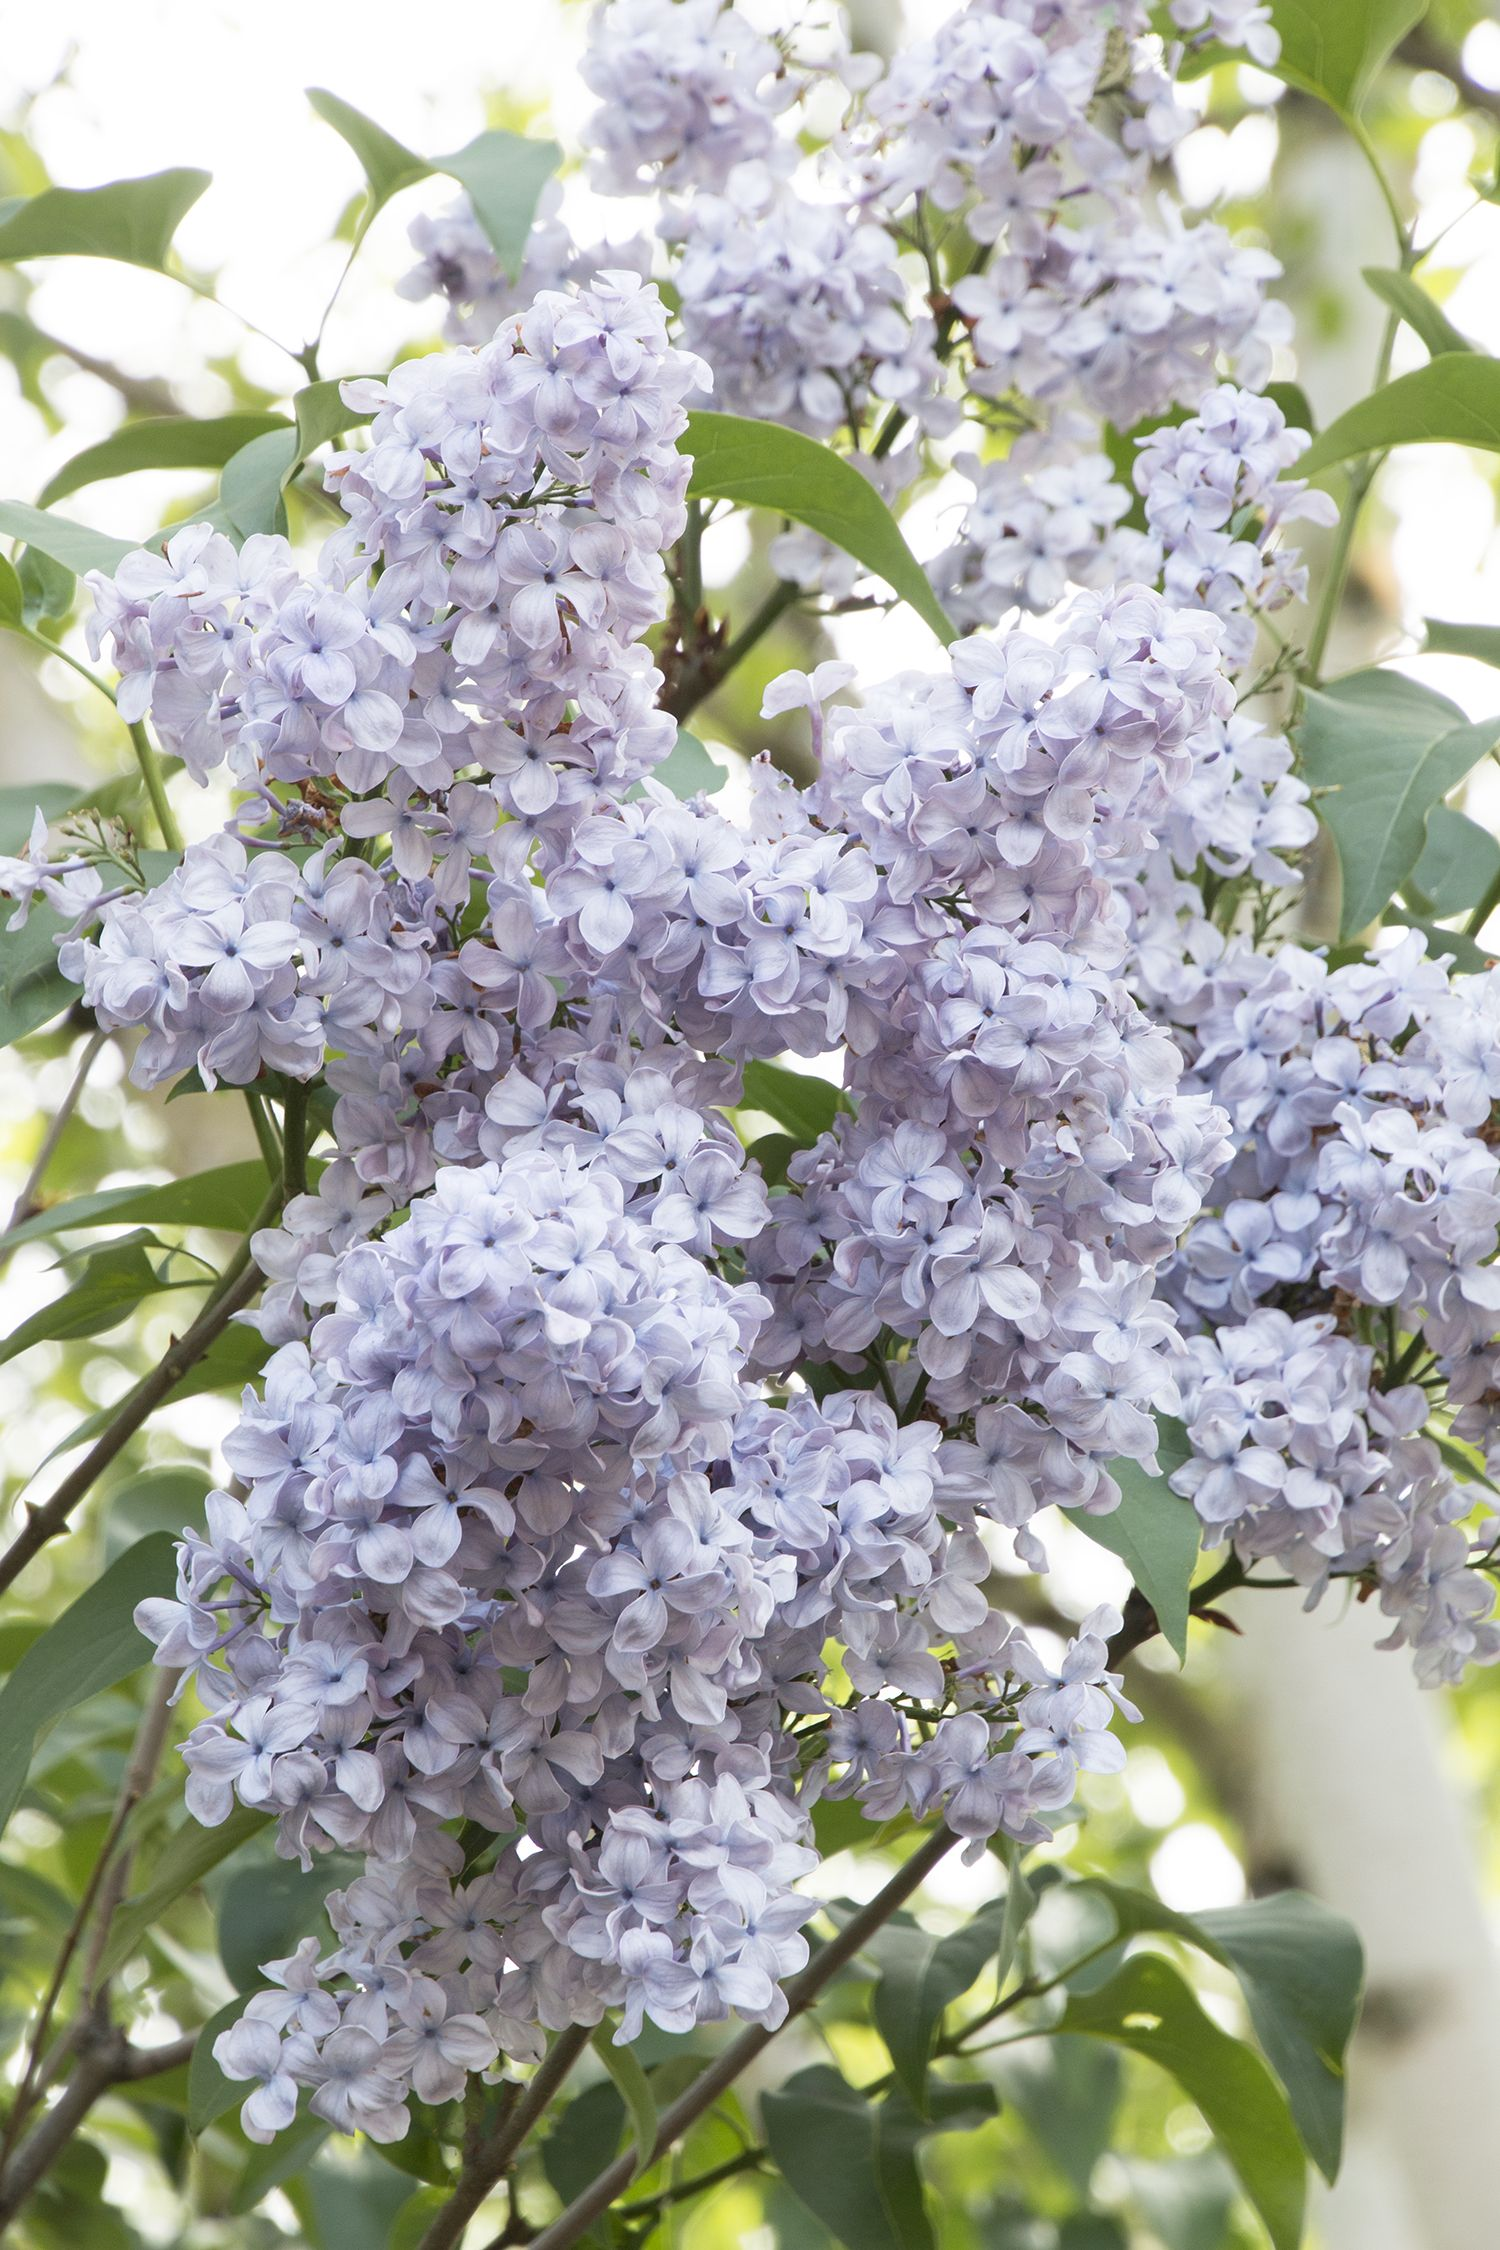 Blue Skies Lilac One Of The Best Lilacs For Warm Winter Areas Spectacular Clusters Of Light Lavender Blue Flowe Flower Garden Plans Blue Flowers Garden Lilac